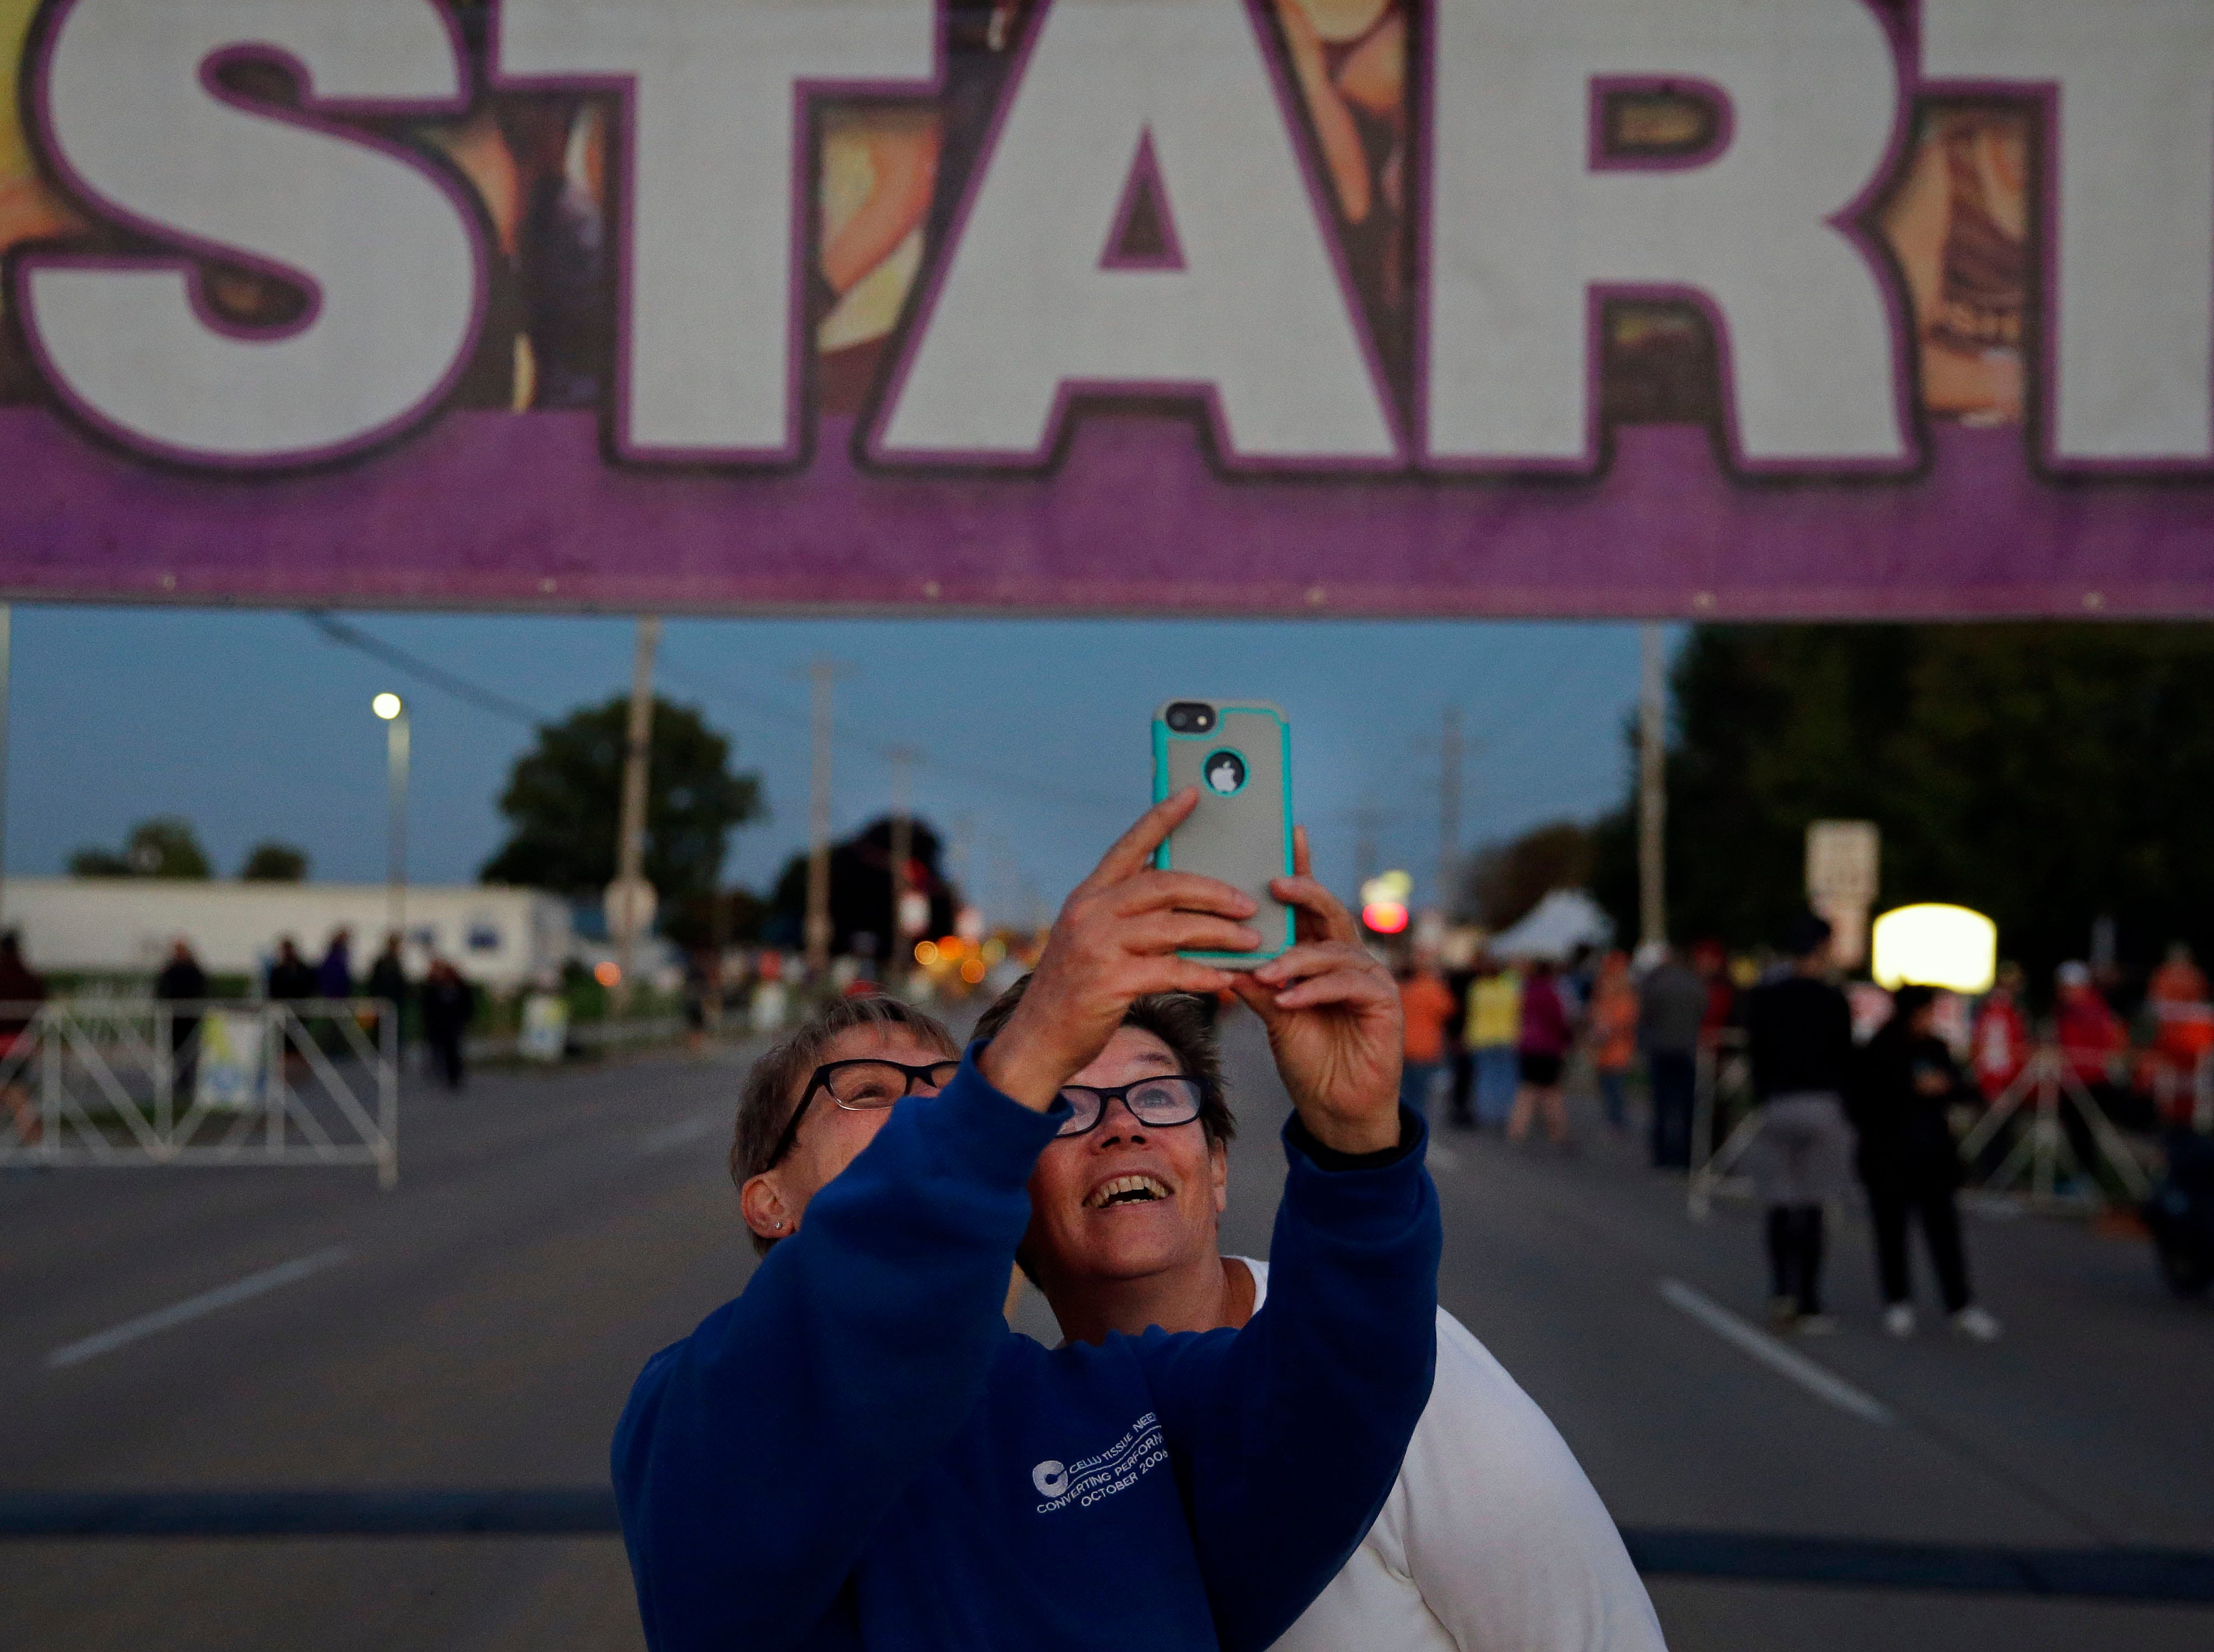 Christine Dancker, left, and JoAnn Burgett get a photo before the start of the Community First Fox Cities Marathon Sunday, September 23, 2018, across the Fox Cities.